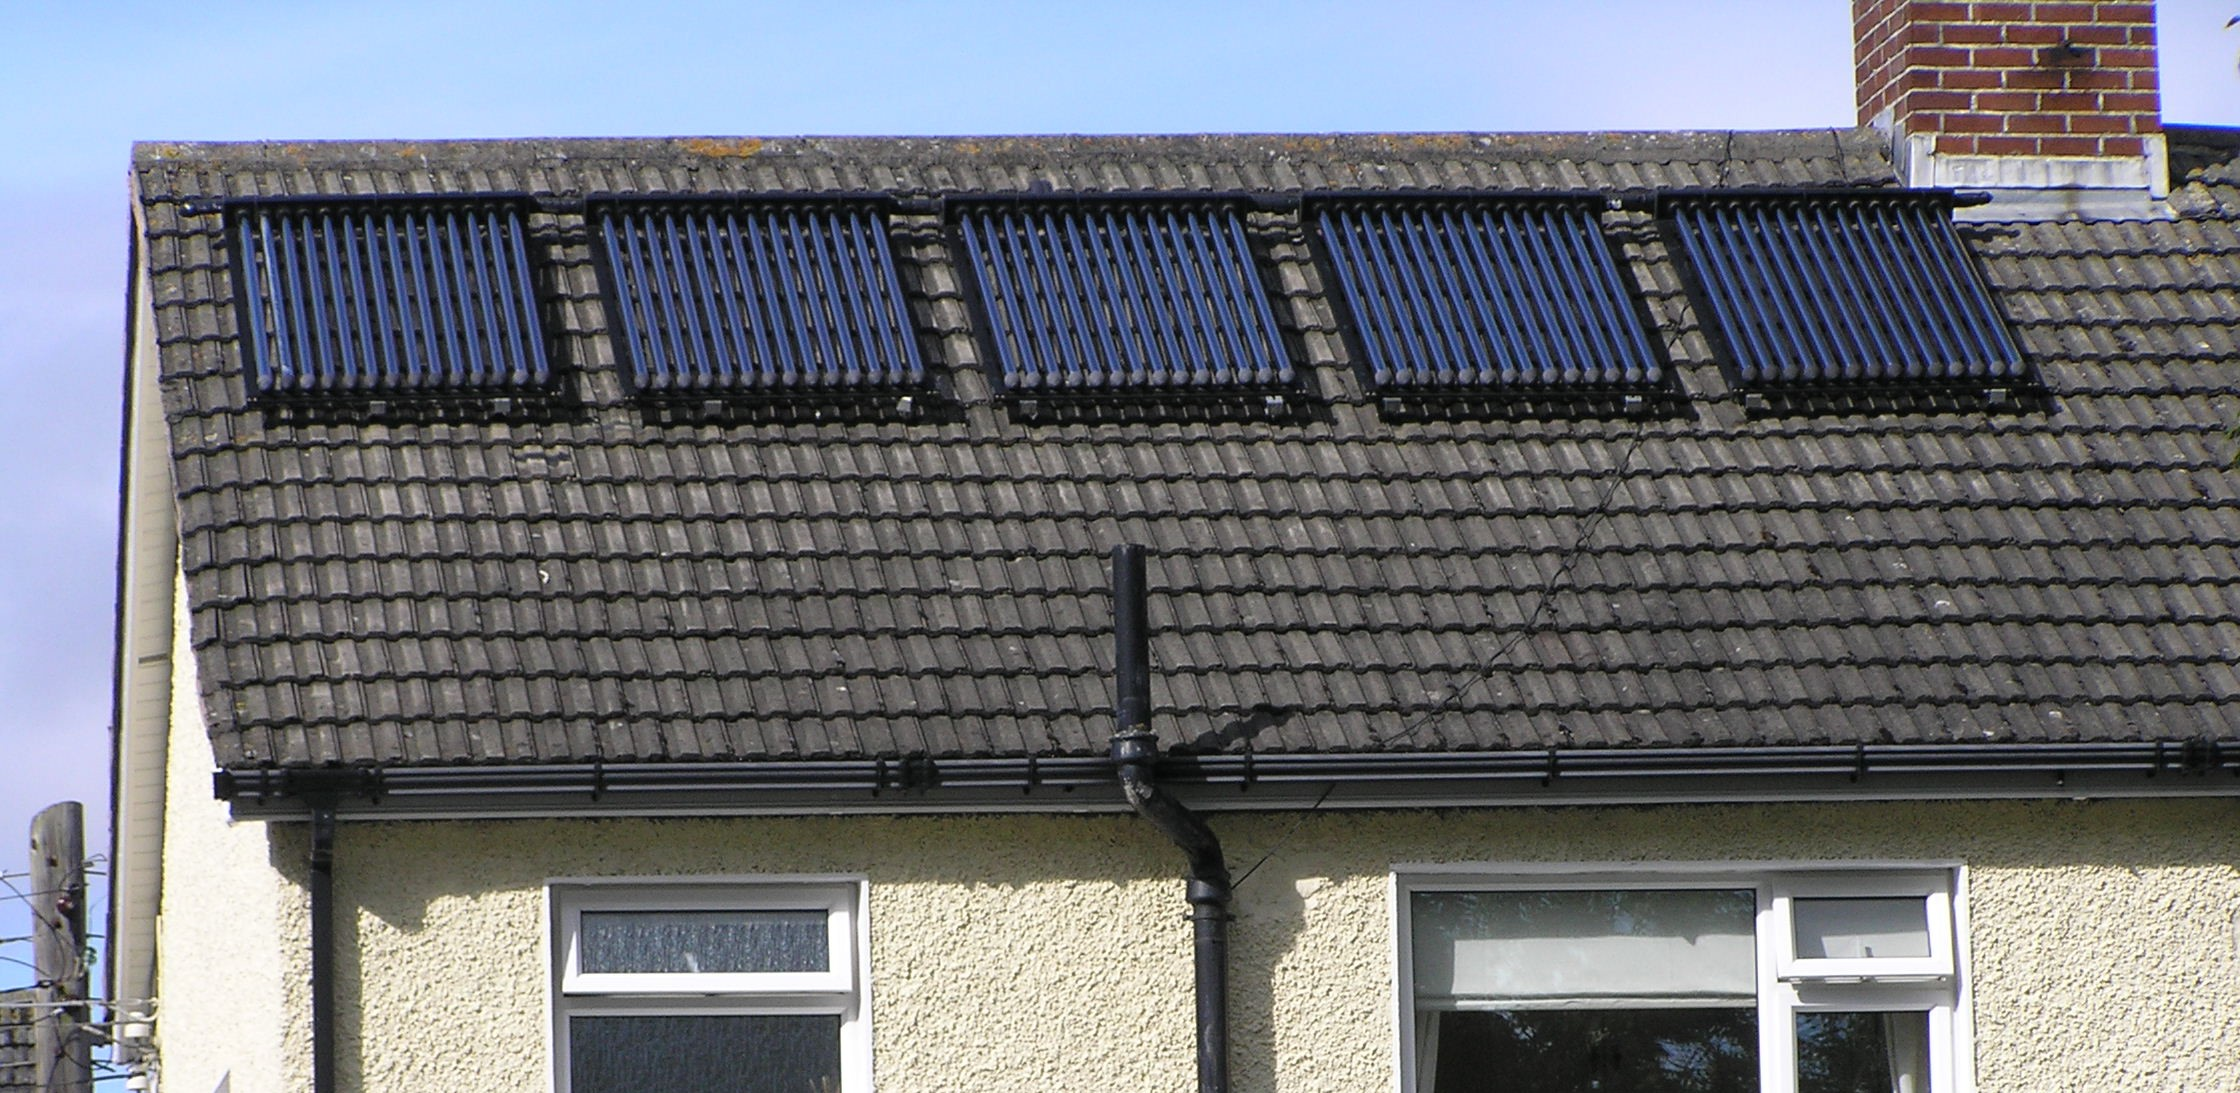 Description Solar Hot Water Panels On Suburban House Roof South Dublin ...